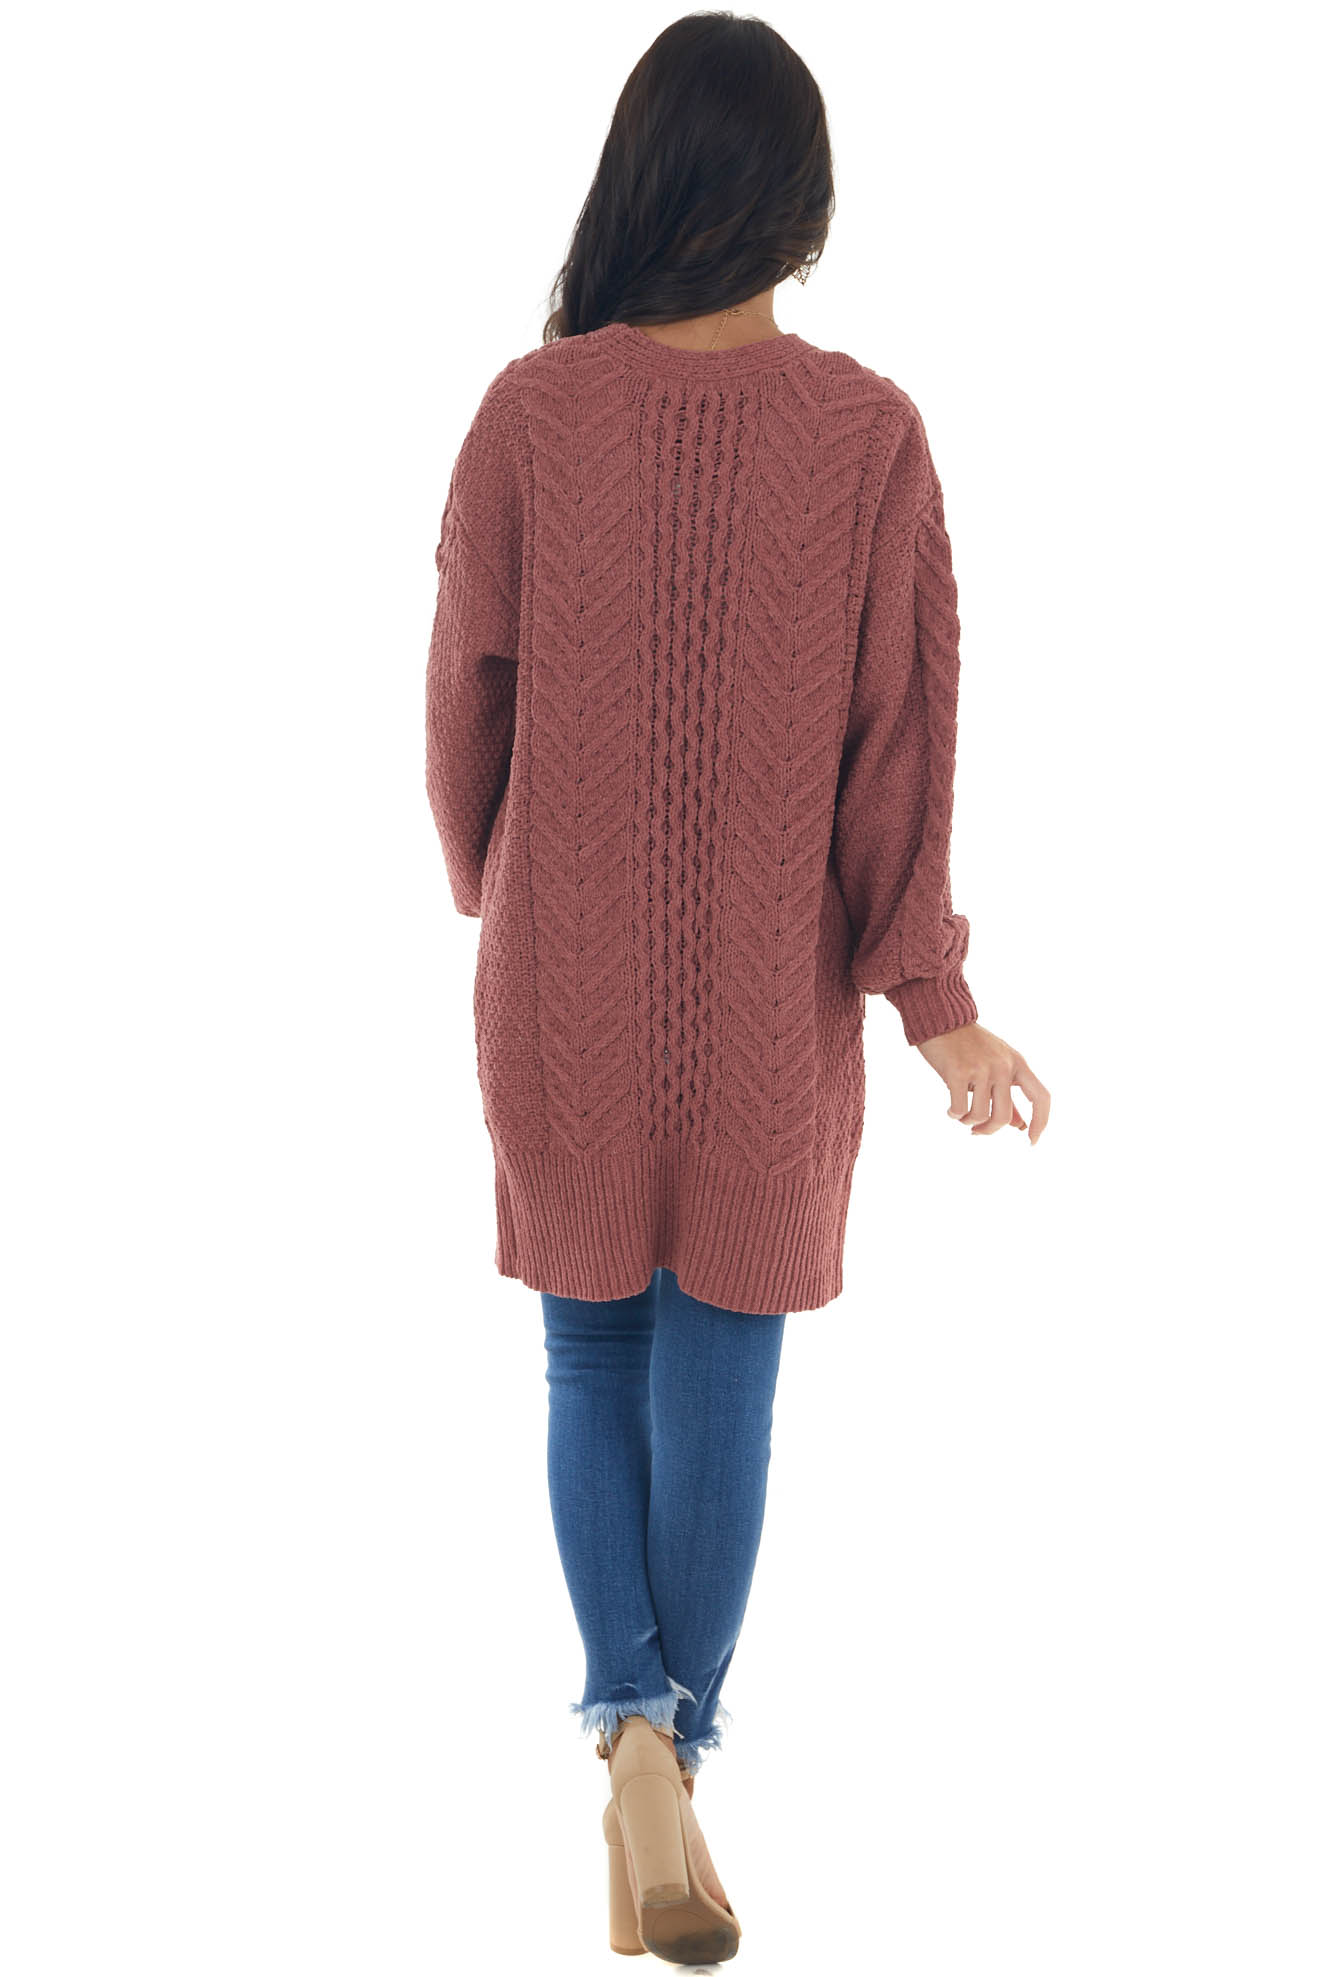 Marsala Chenille Thick Cable Knit Cardigan